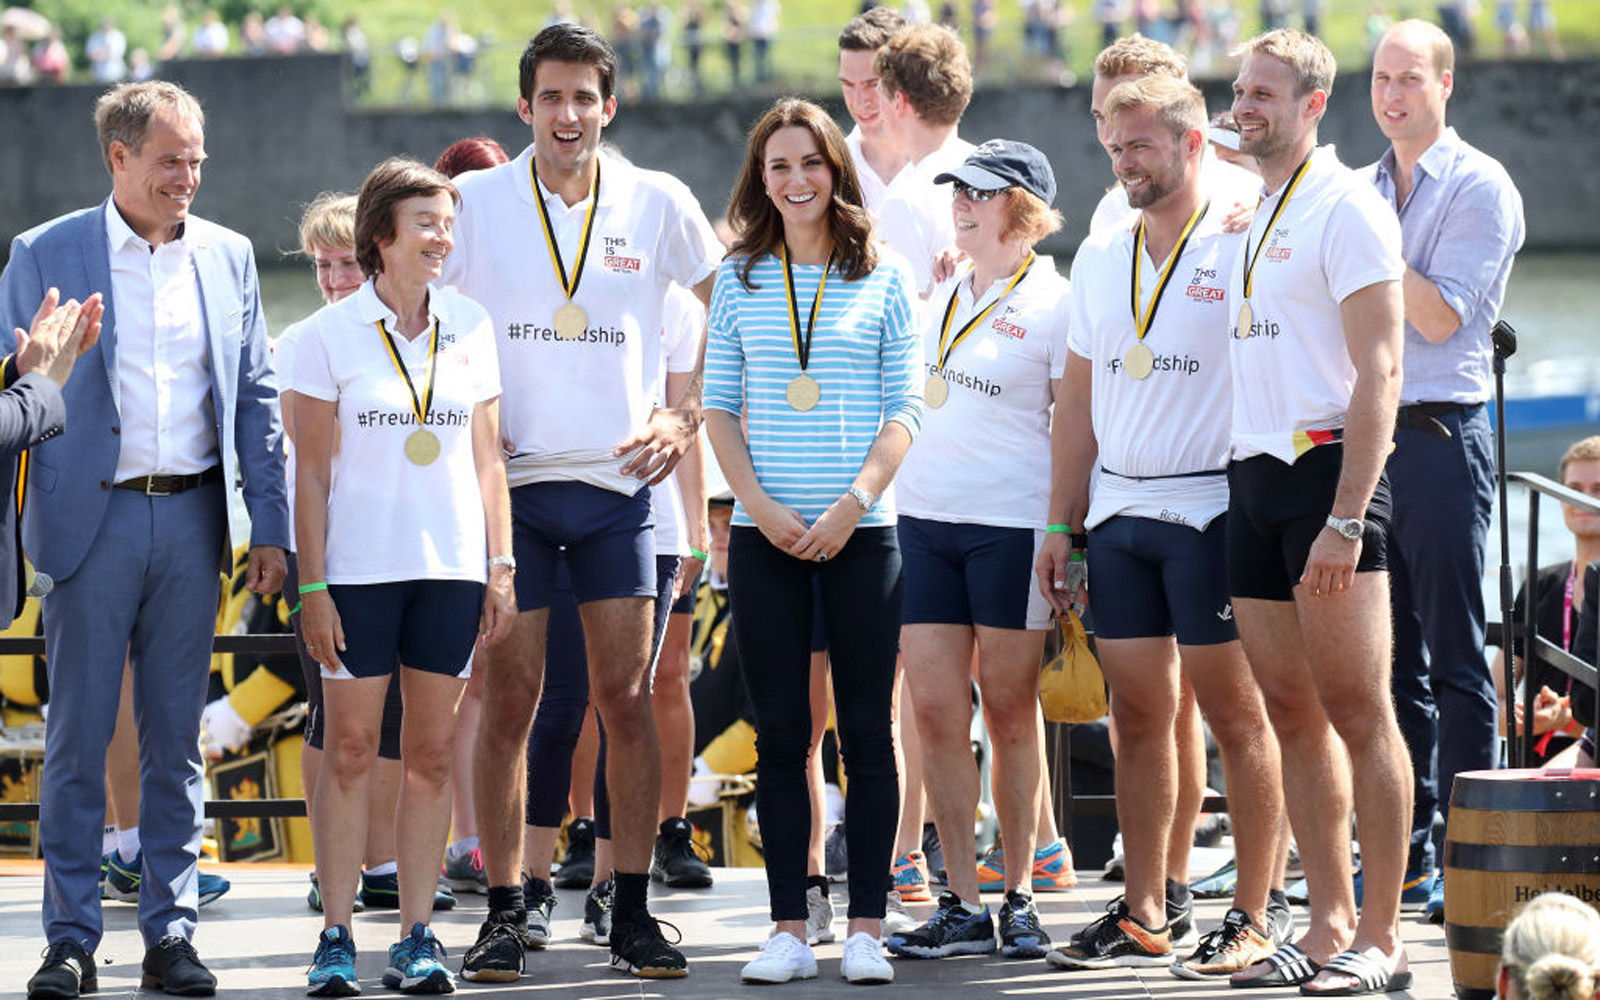 HEIDELBERG, GERMANY - JULY 20:  Catherine, Duchess of Cambridge and her team with their medals after participating in a rowing race between the twinned town of Cambridge and Heidelberg and against Prince William, Duke of Cambridge on day 2 of their offici